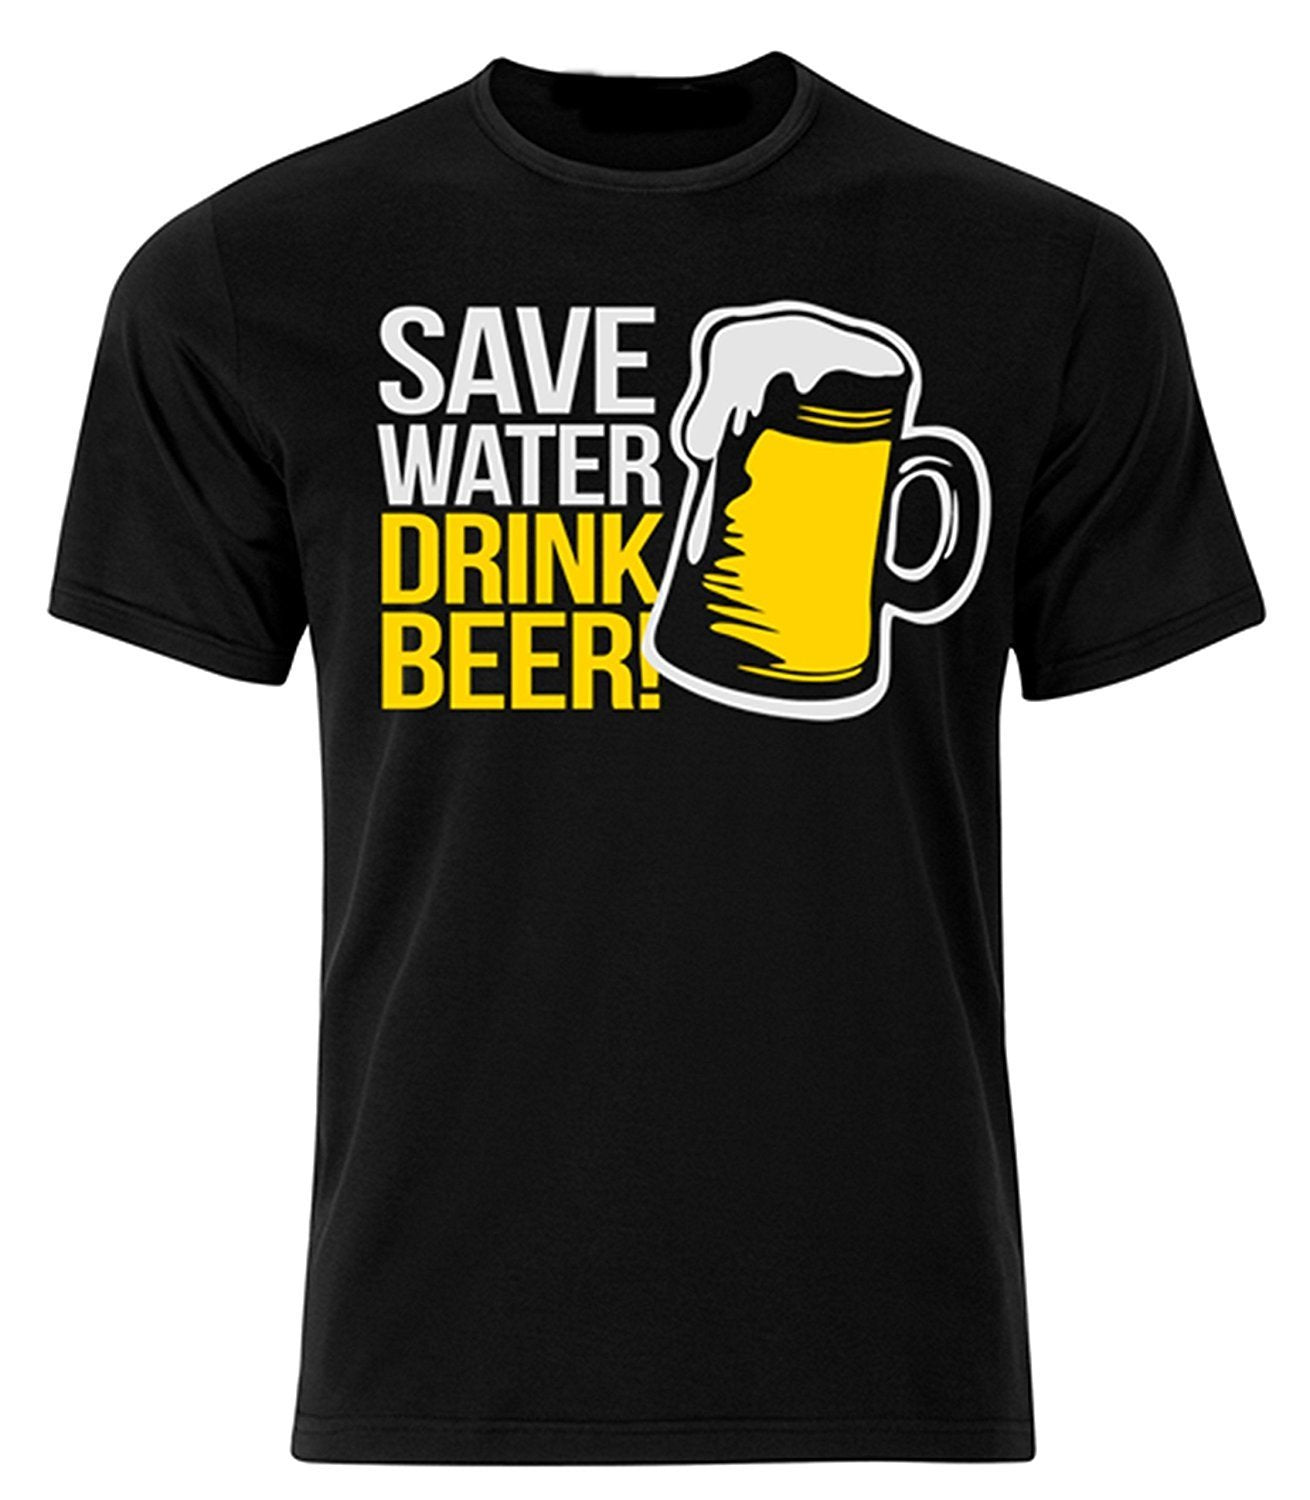 Bear Essentials Clothing. Save Water Black T-Shirt - Bear Essentials Clothing Company